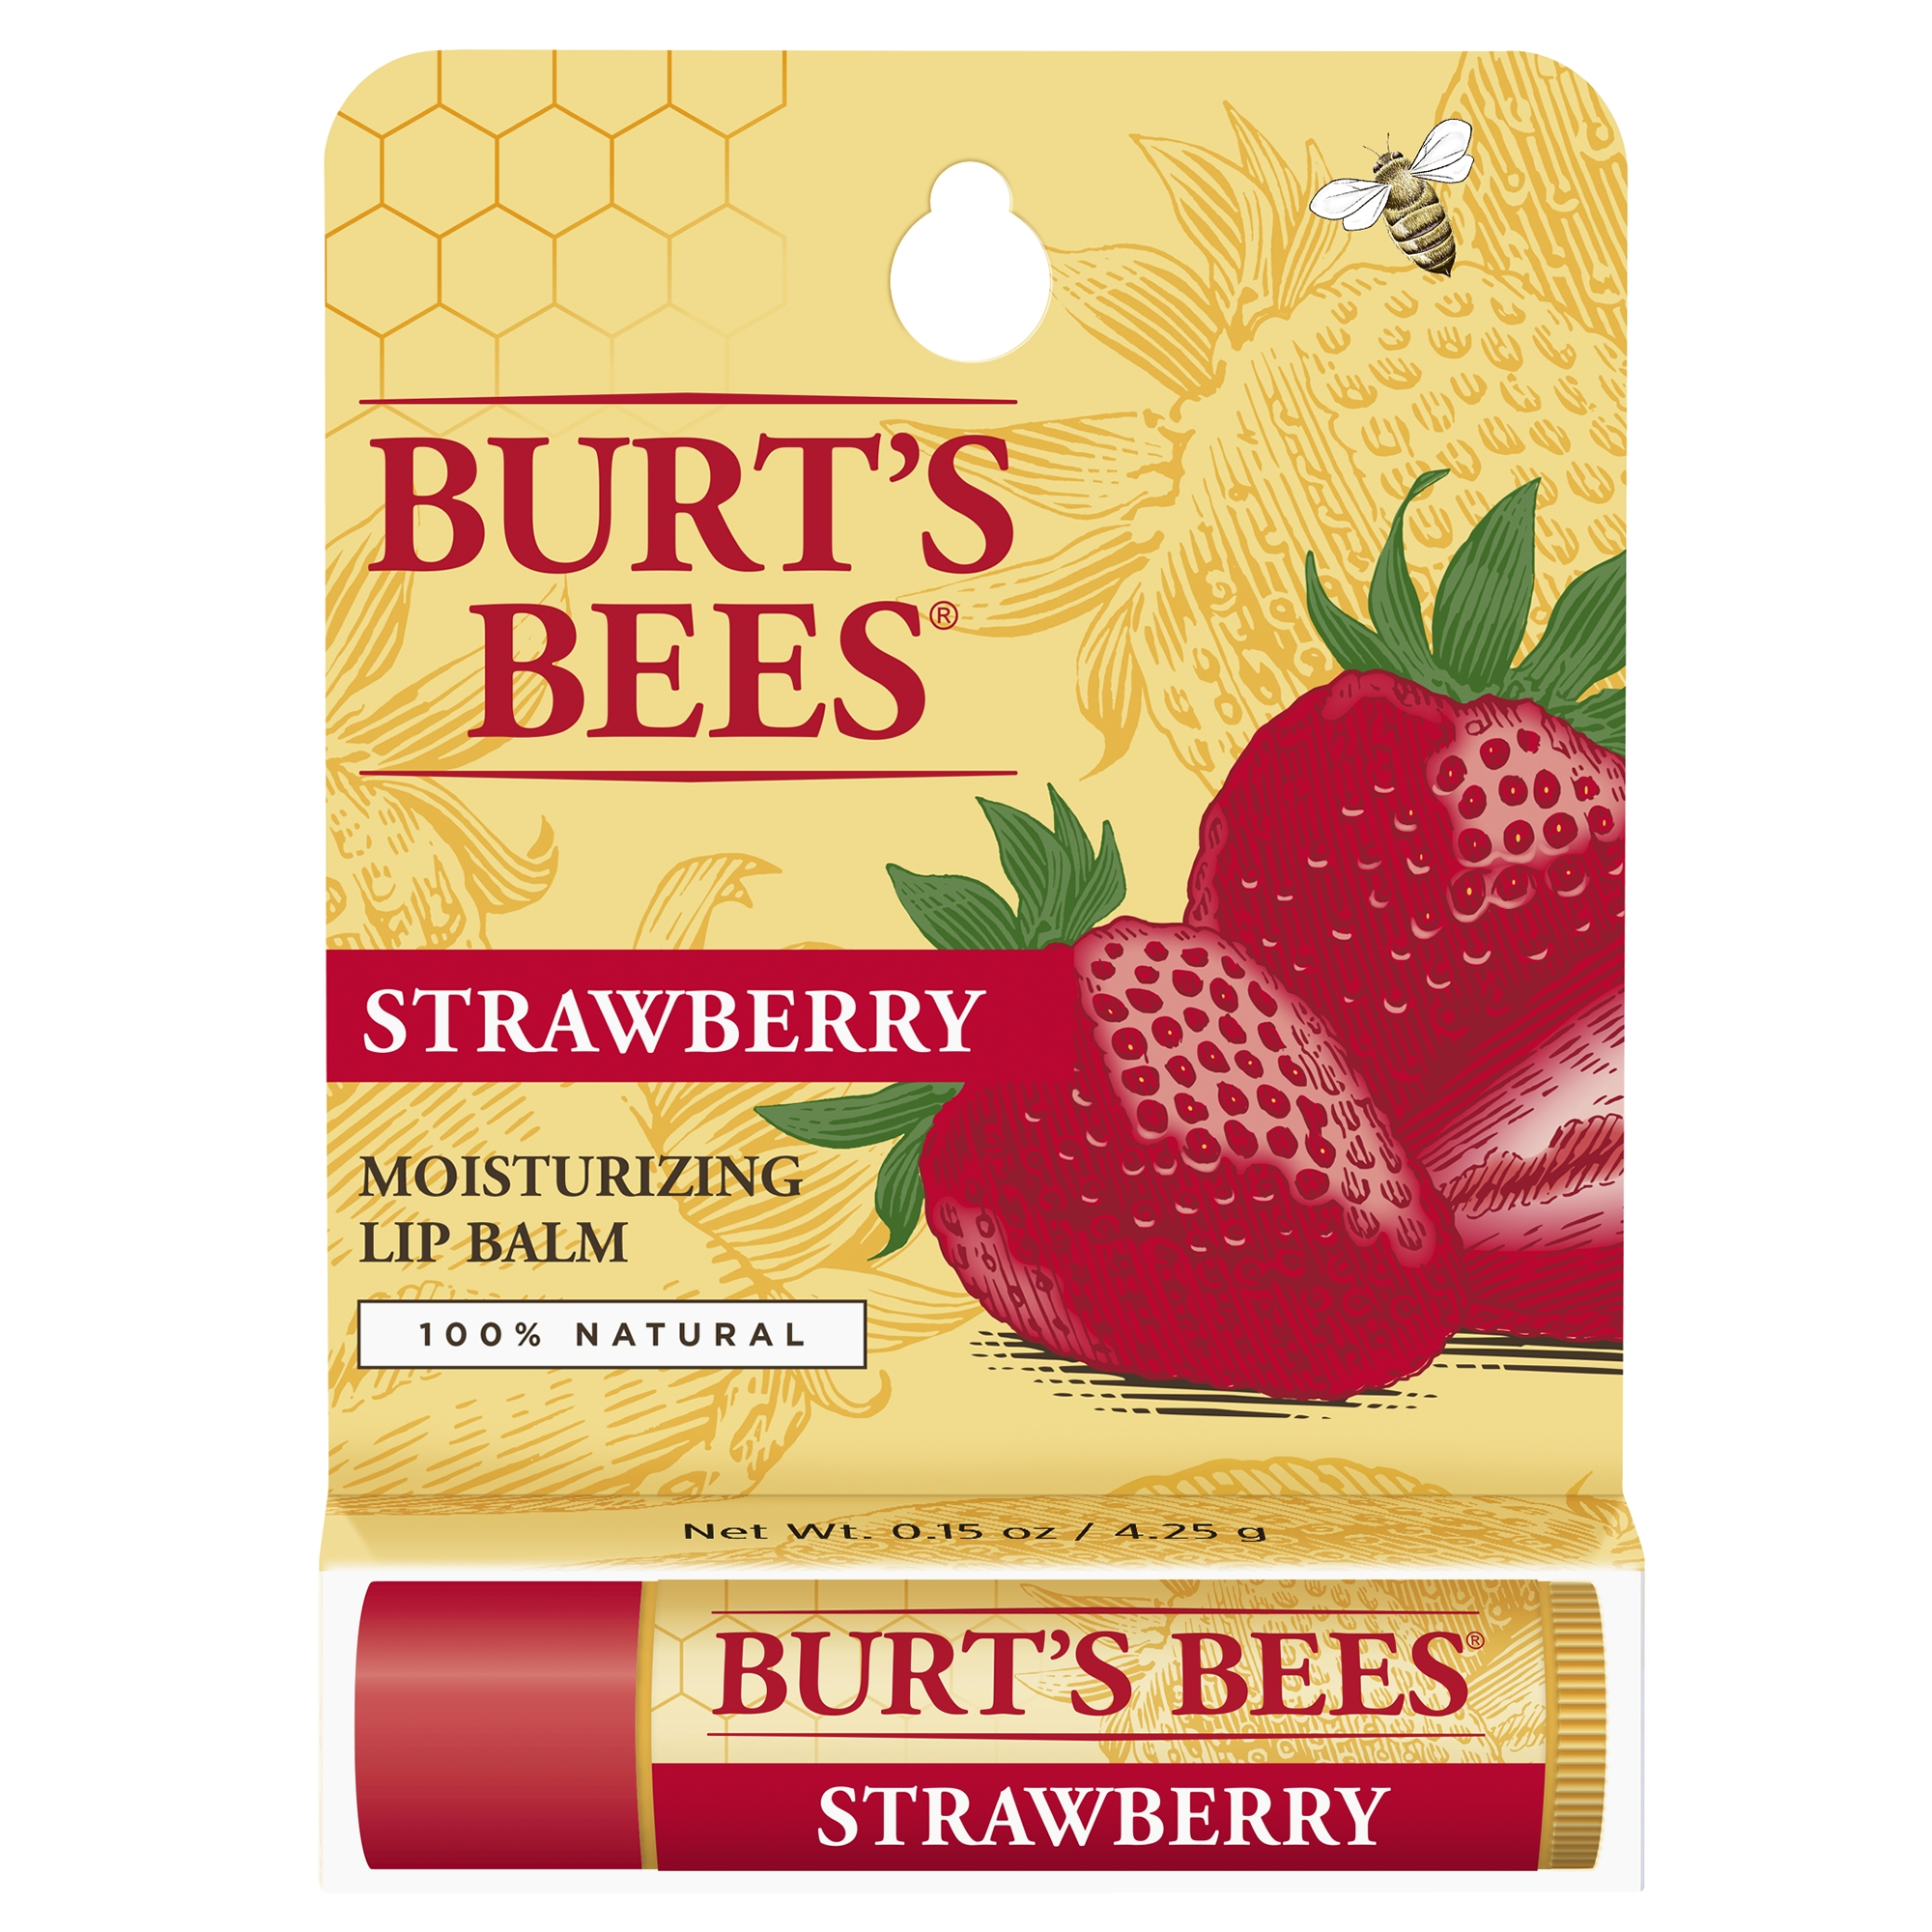 Burt's Bees 100% Natural Moisturizing Lip Balm, Strawberry with Beeswax & Fruit Extracts - 1 Tube